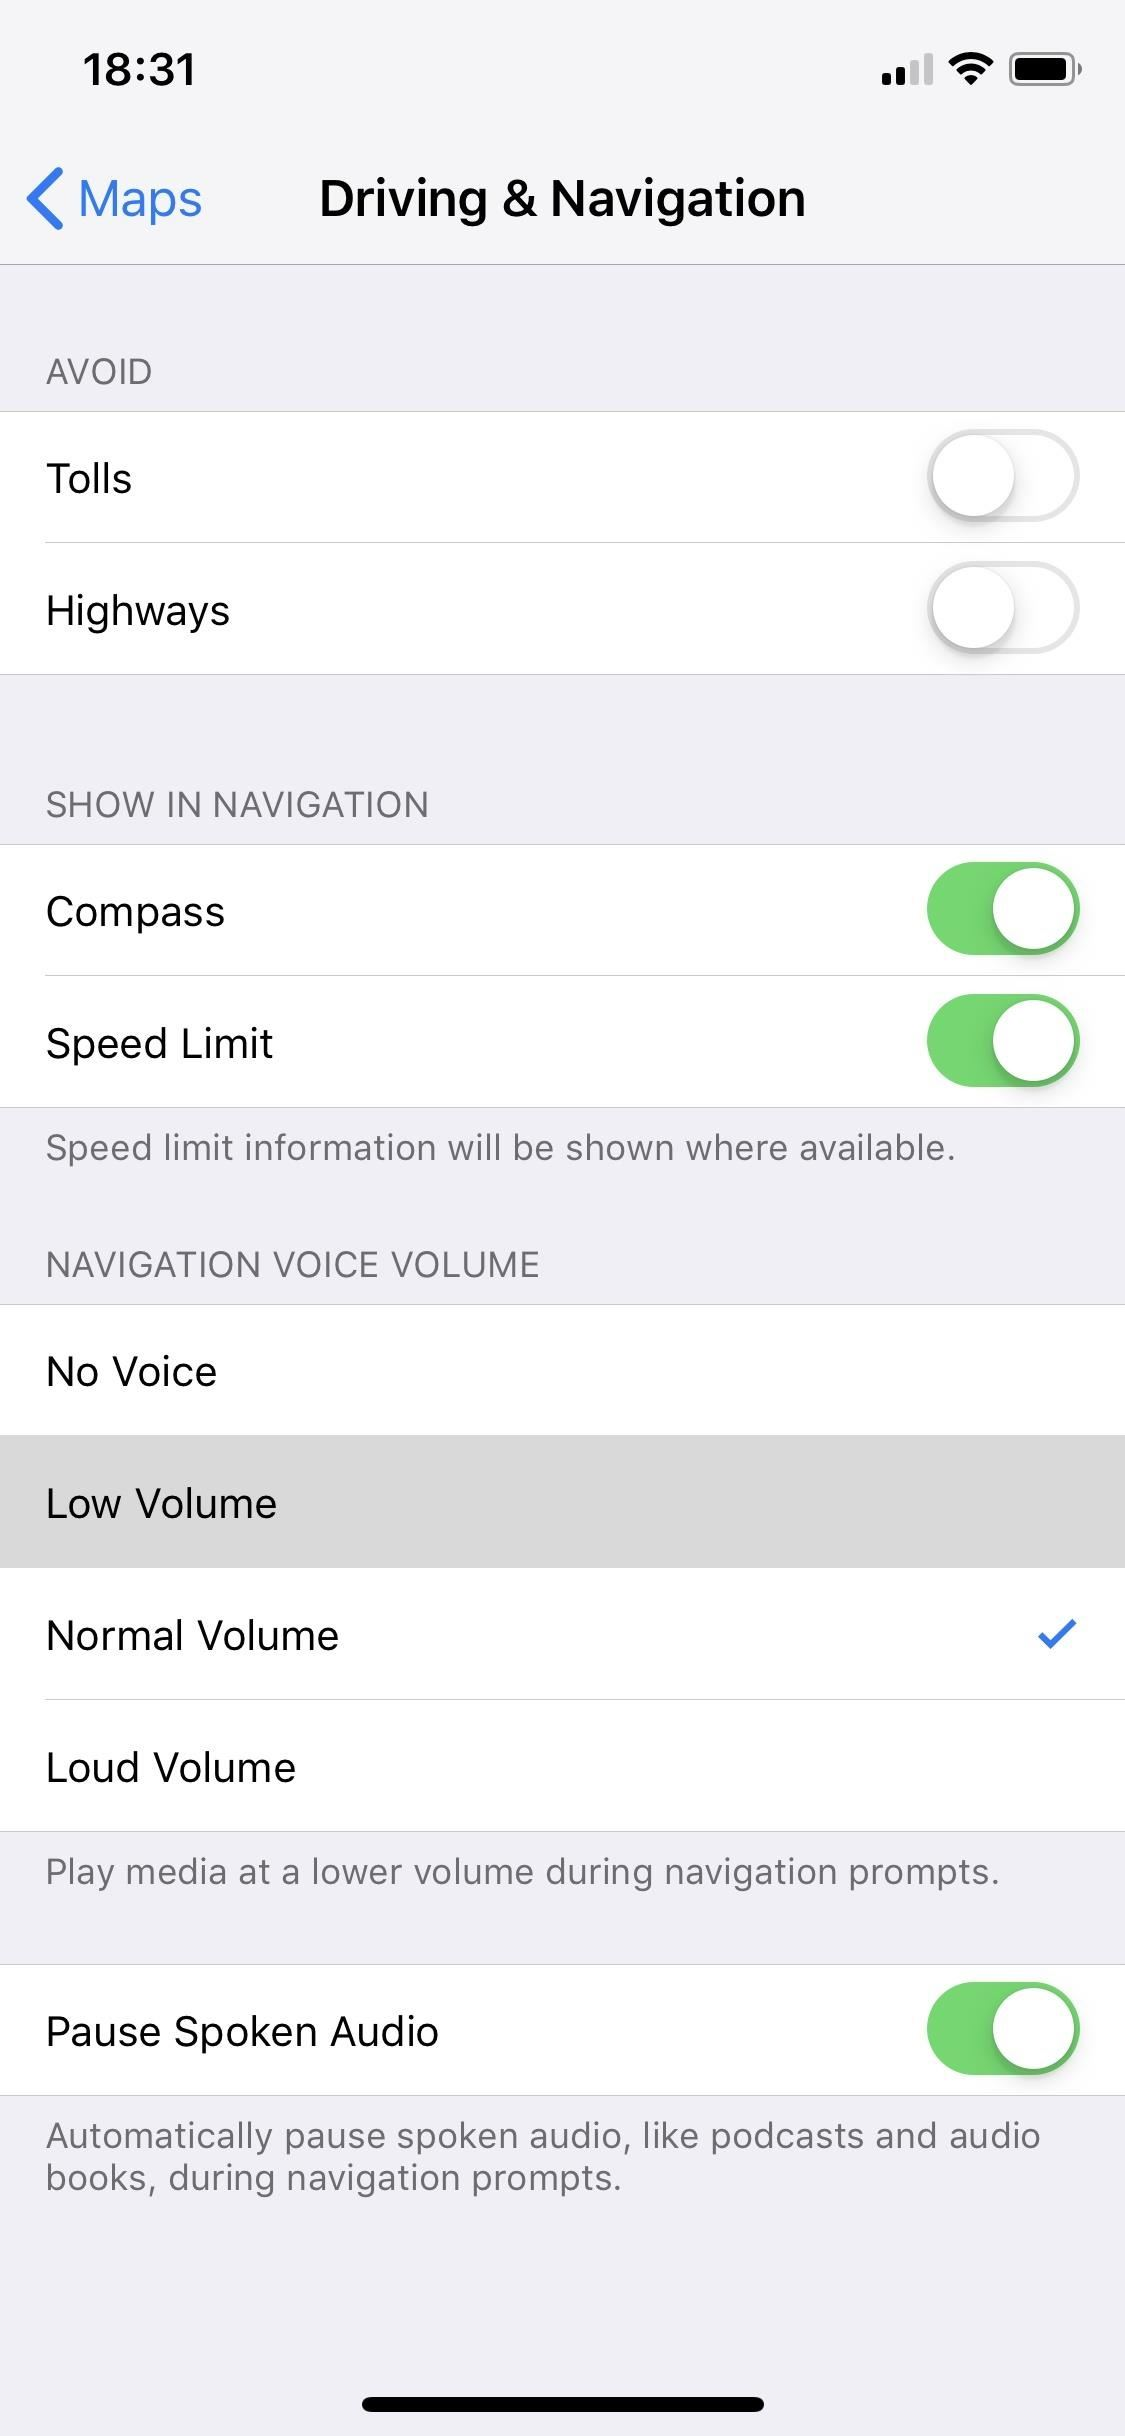 Customizing navigation instructions on Apple Maps for clearer spoken instructions